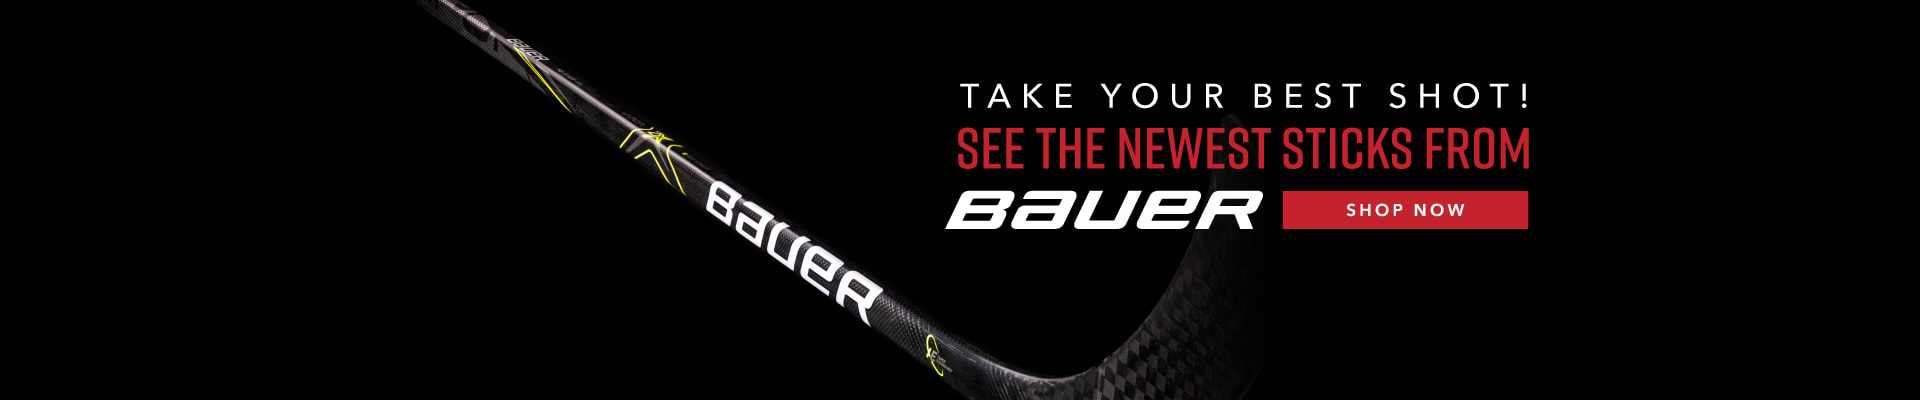 Shop New Sticks From Bauer